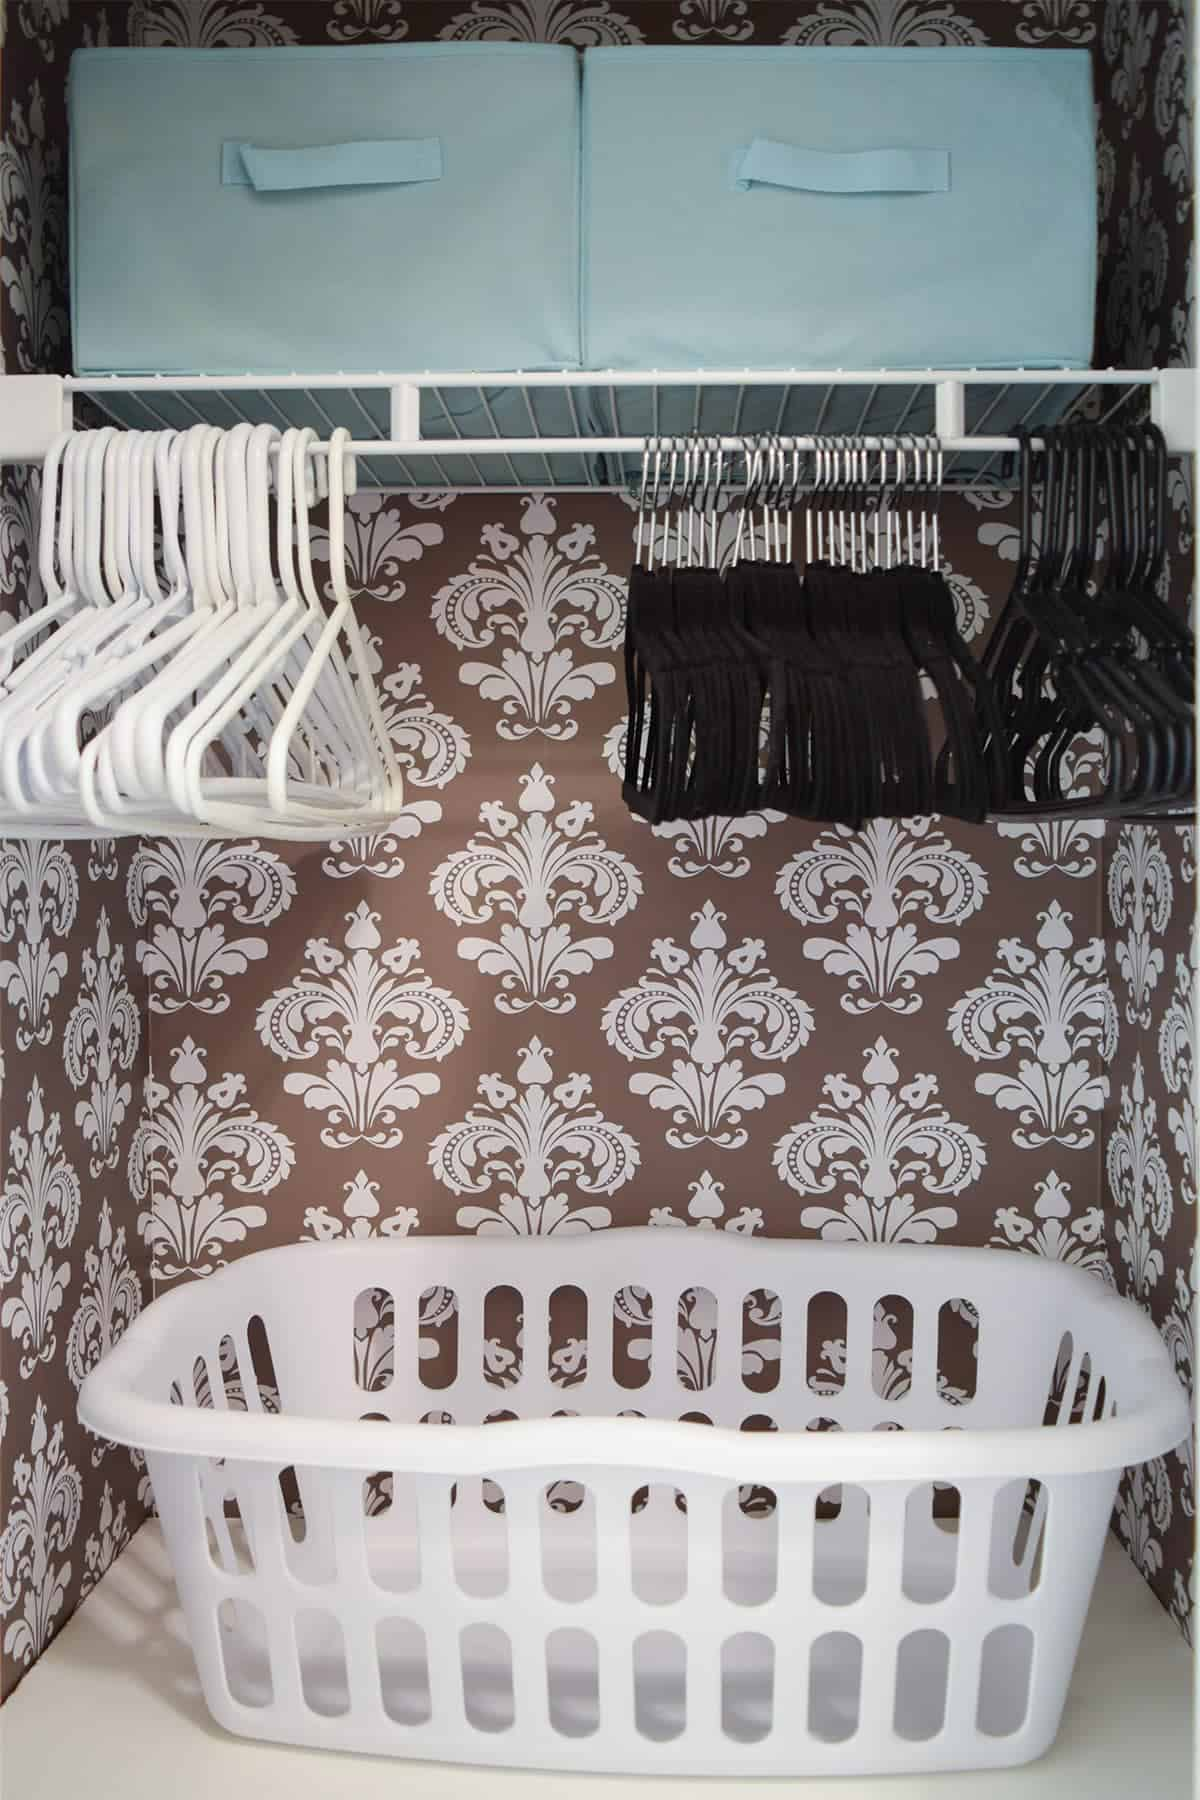 Small laundry closet with brown and white damask wall covering, white shelves with laundry baskets, black and white hangers, and teal bins.